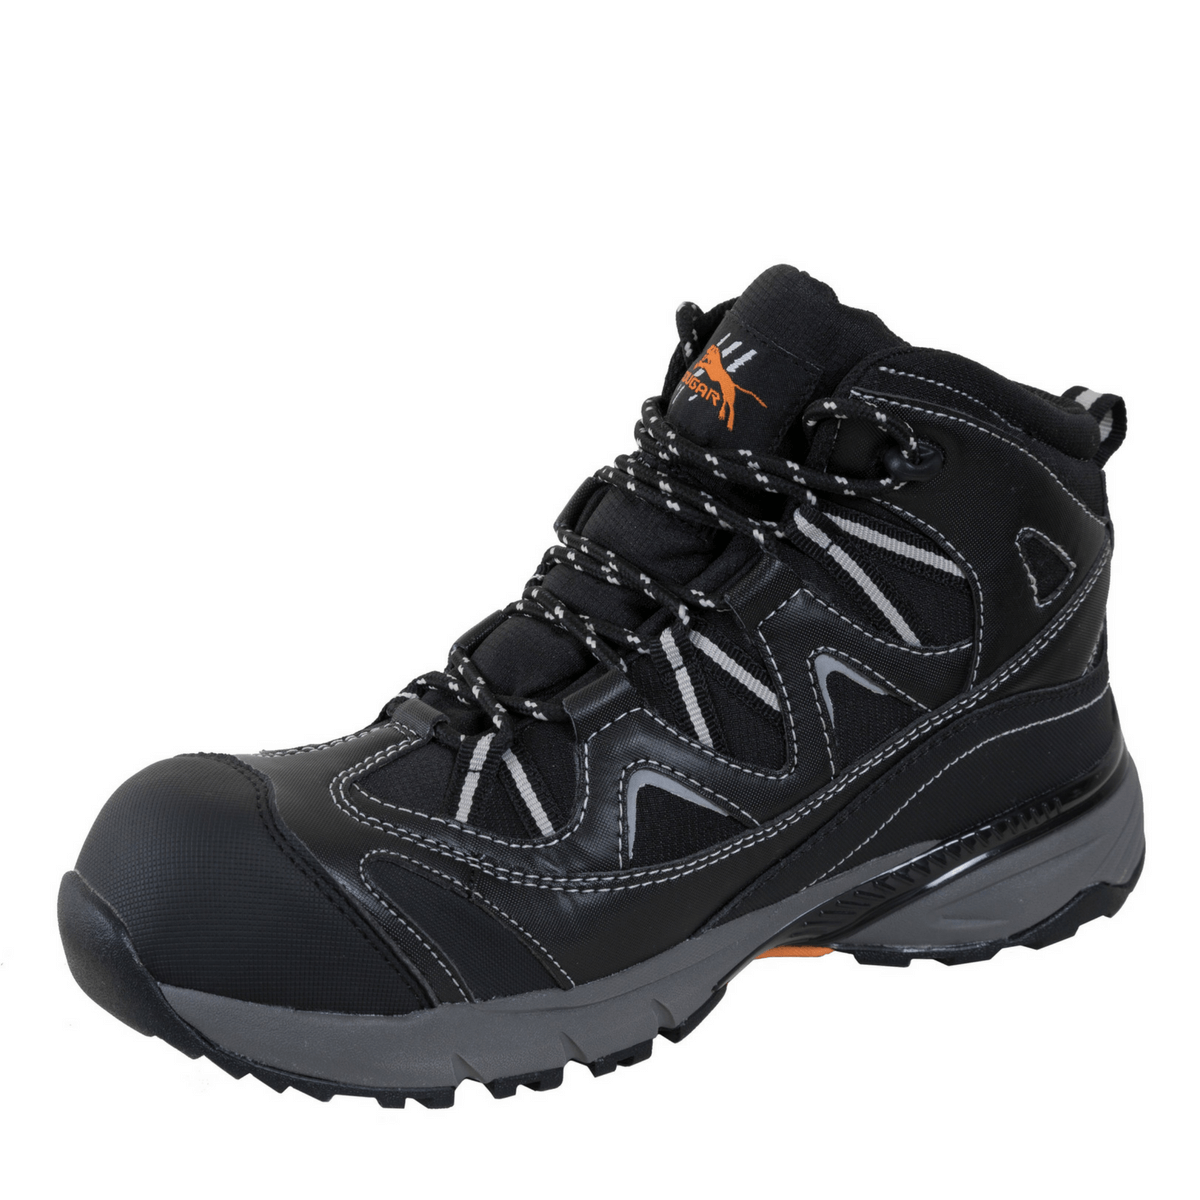 Cougar Amsterdam Waterproof Safety Boot Badger Australia